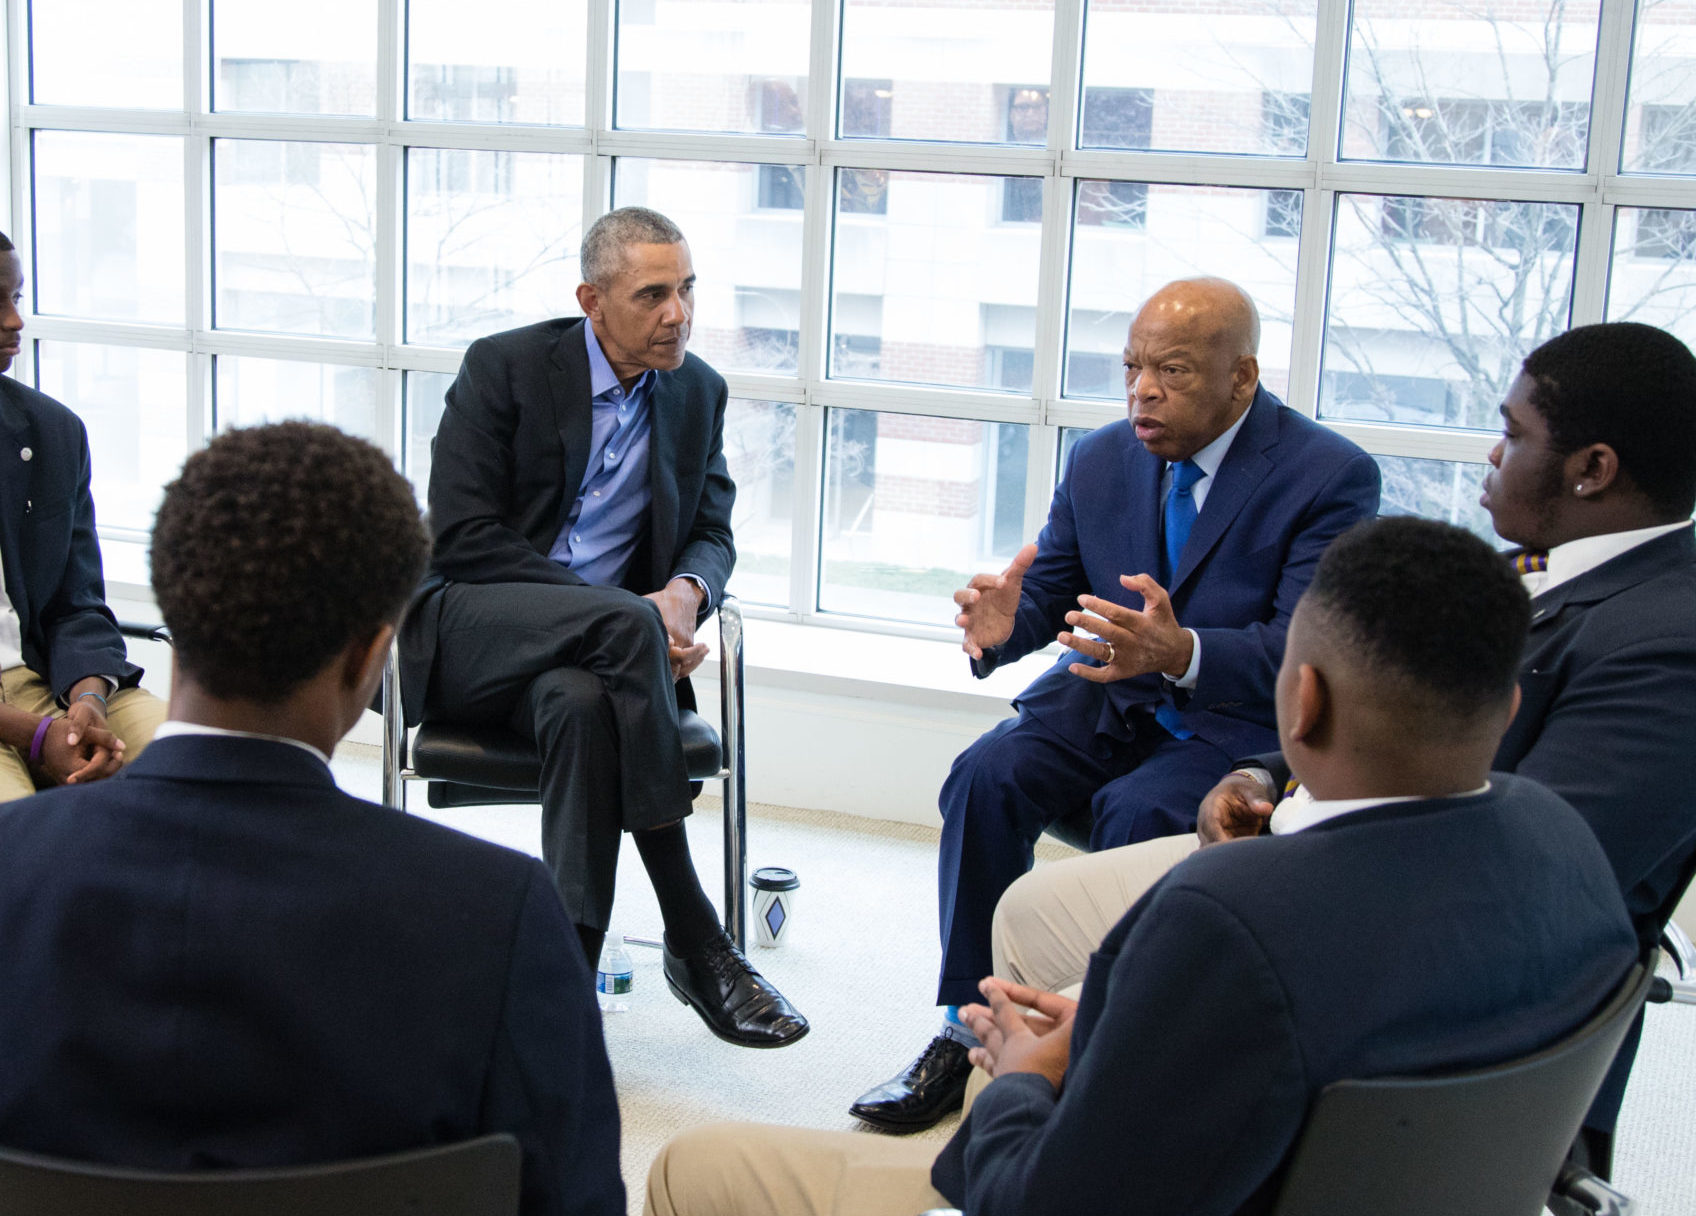 President Barack Obama and Rep. John Lewis (D-GA) host a discussion with Ron Brown College Preparatory High School students at the office of the former president in Washington, DC April 2, 2018. (Photo by Chuck Kennedy)Ron Brown College Preparatory High School students visit the Martin Luther King Jr. Memorial in Washington, DC following a discussion with President Barack Obama and Rep. John Lewis (D-GA) at the office of the former president April 2, 2018. April 4, marks the 50th. anniversary of the assassination of Dr. Martin Luther King, Jr.